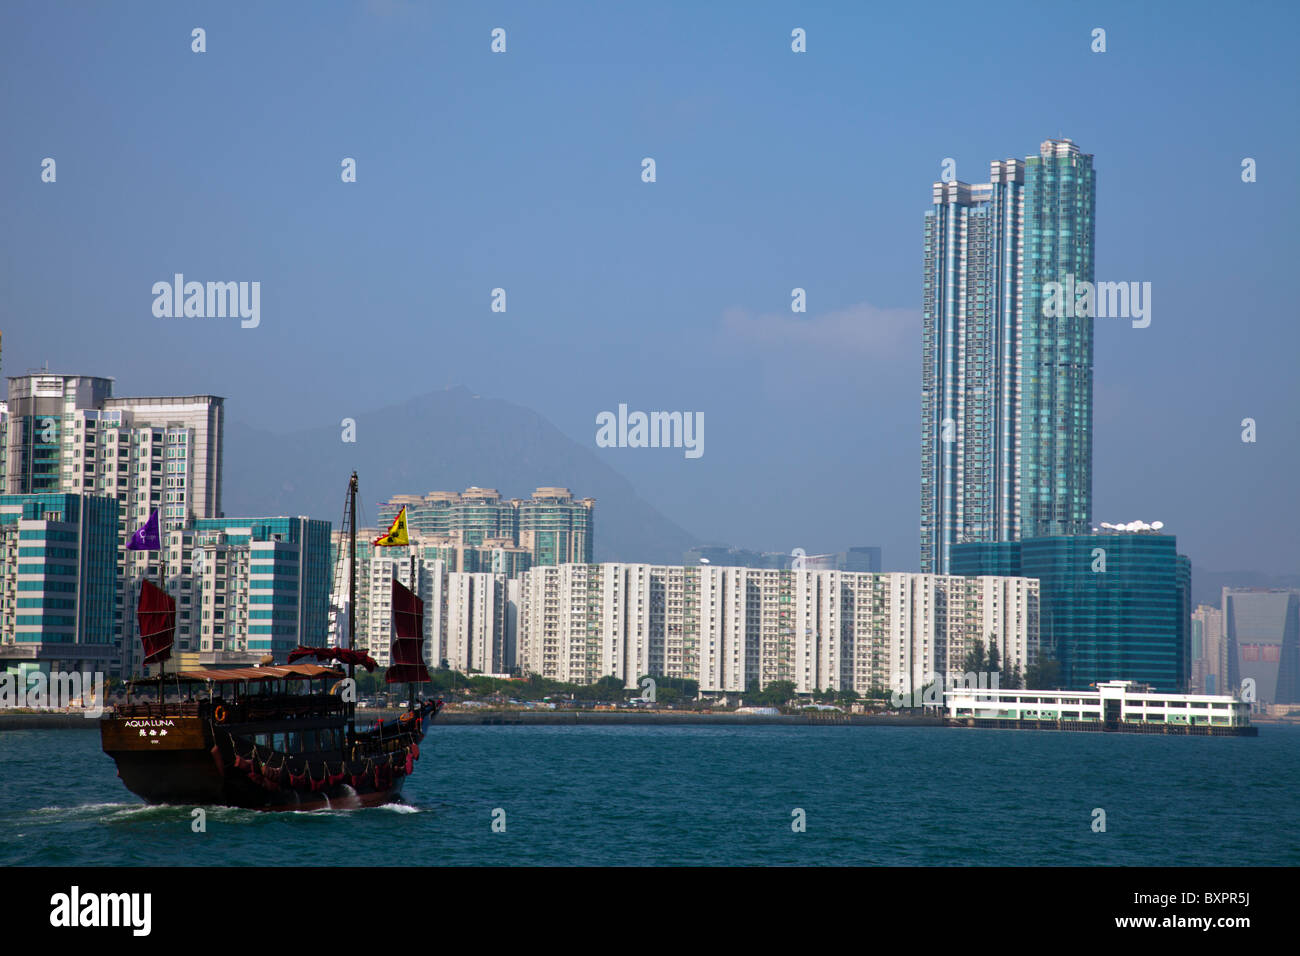 The iconic Chinese junk on Victoria Harbour against the Kowloon skyline, Hong Kong, China, Asia - Stock Image